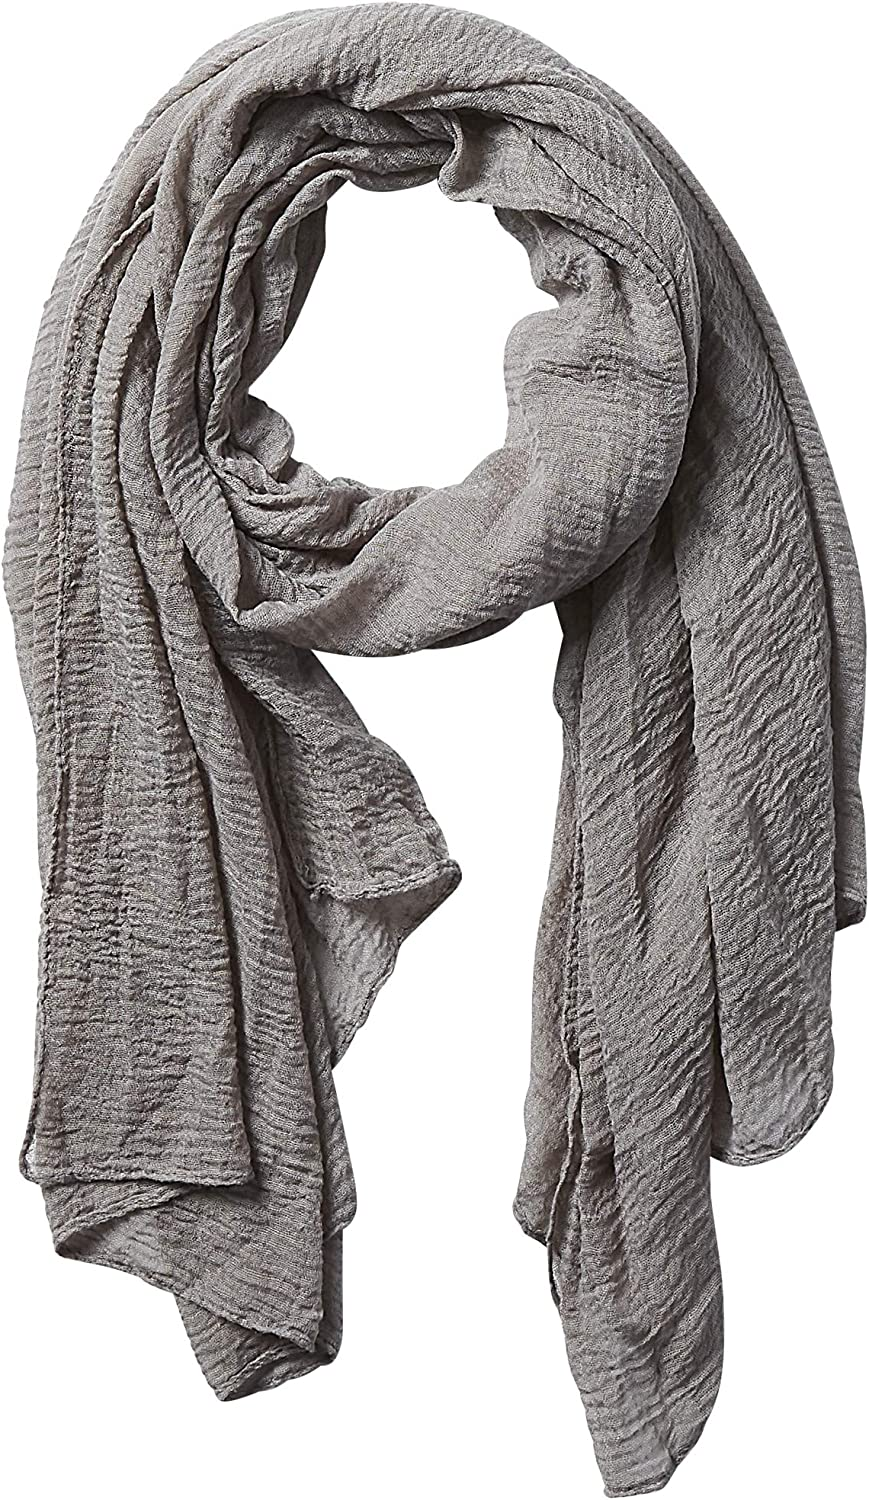 Tickled Pink Women's Lightweight Summer Insect Shield Scarf, Classic Taupe, One Size